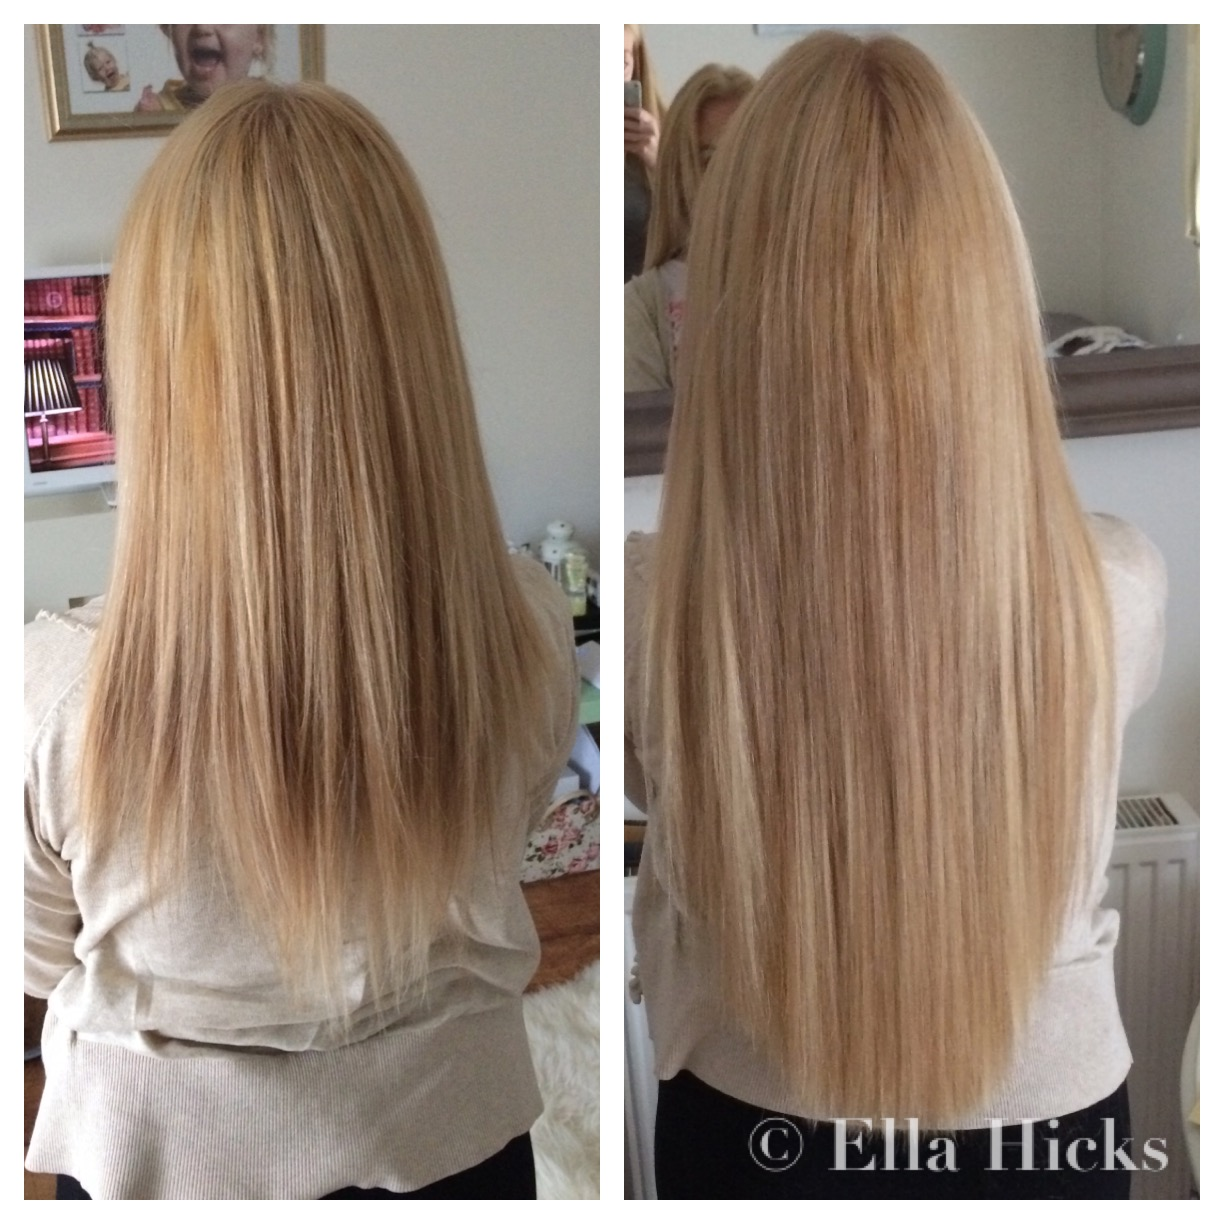 Ella hicks hair extensions portfolio long blonde micro ring hair extensions to add thickness pmusecretfo Images